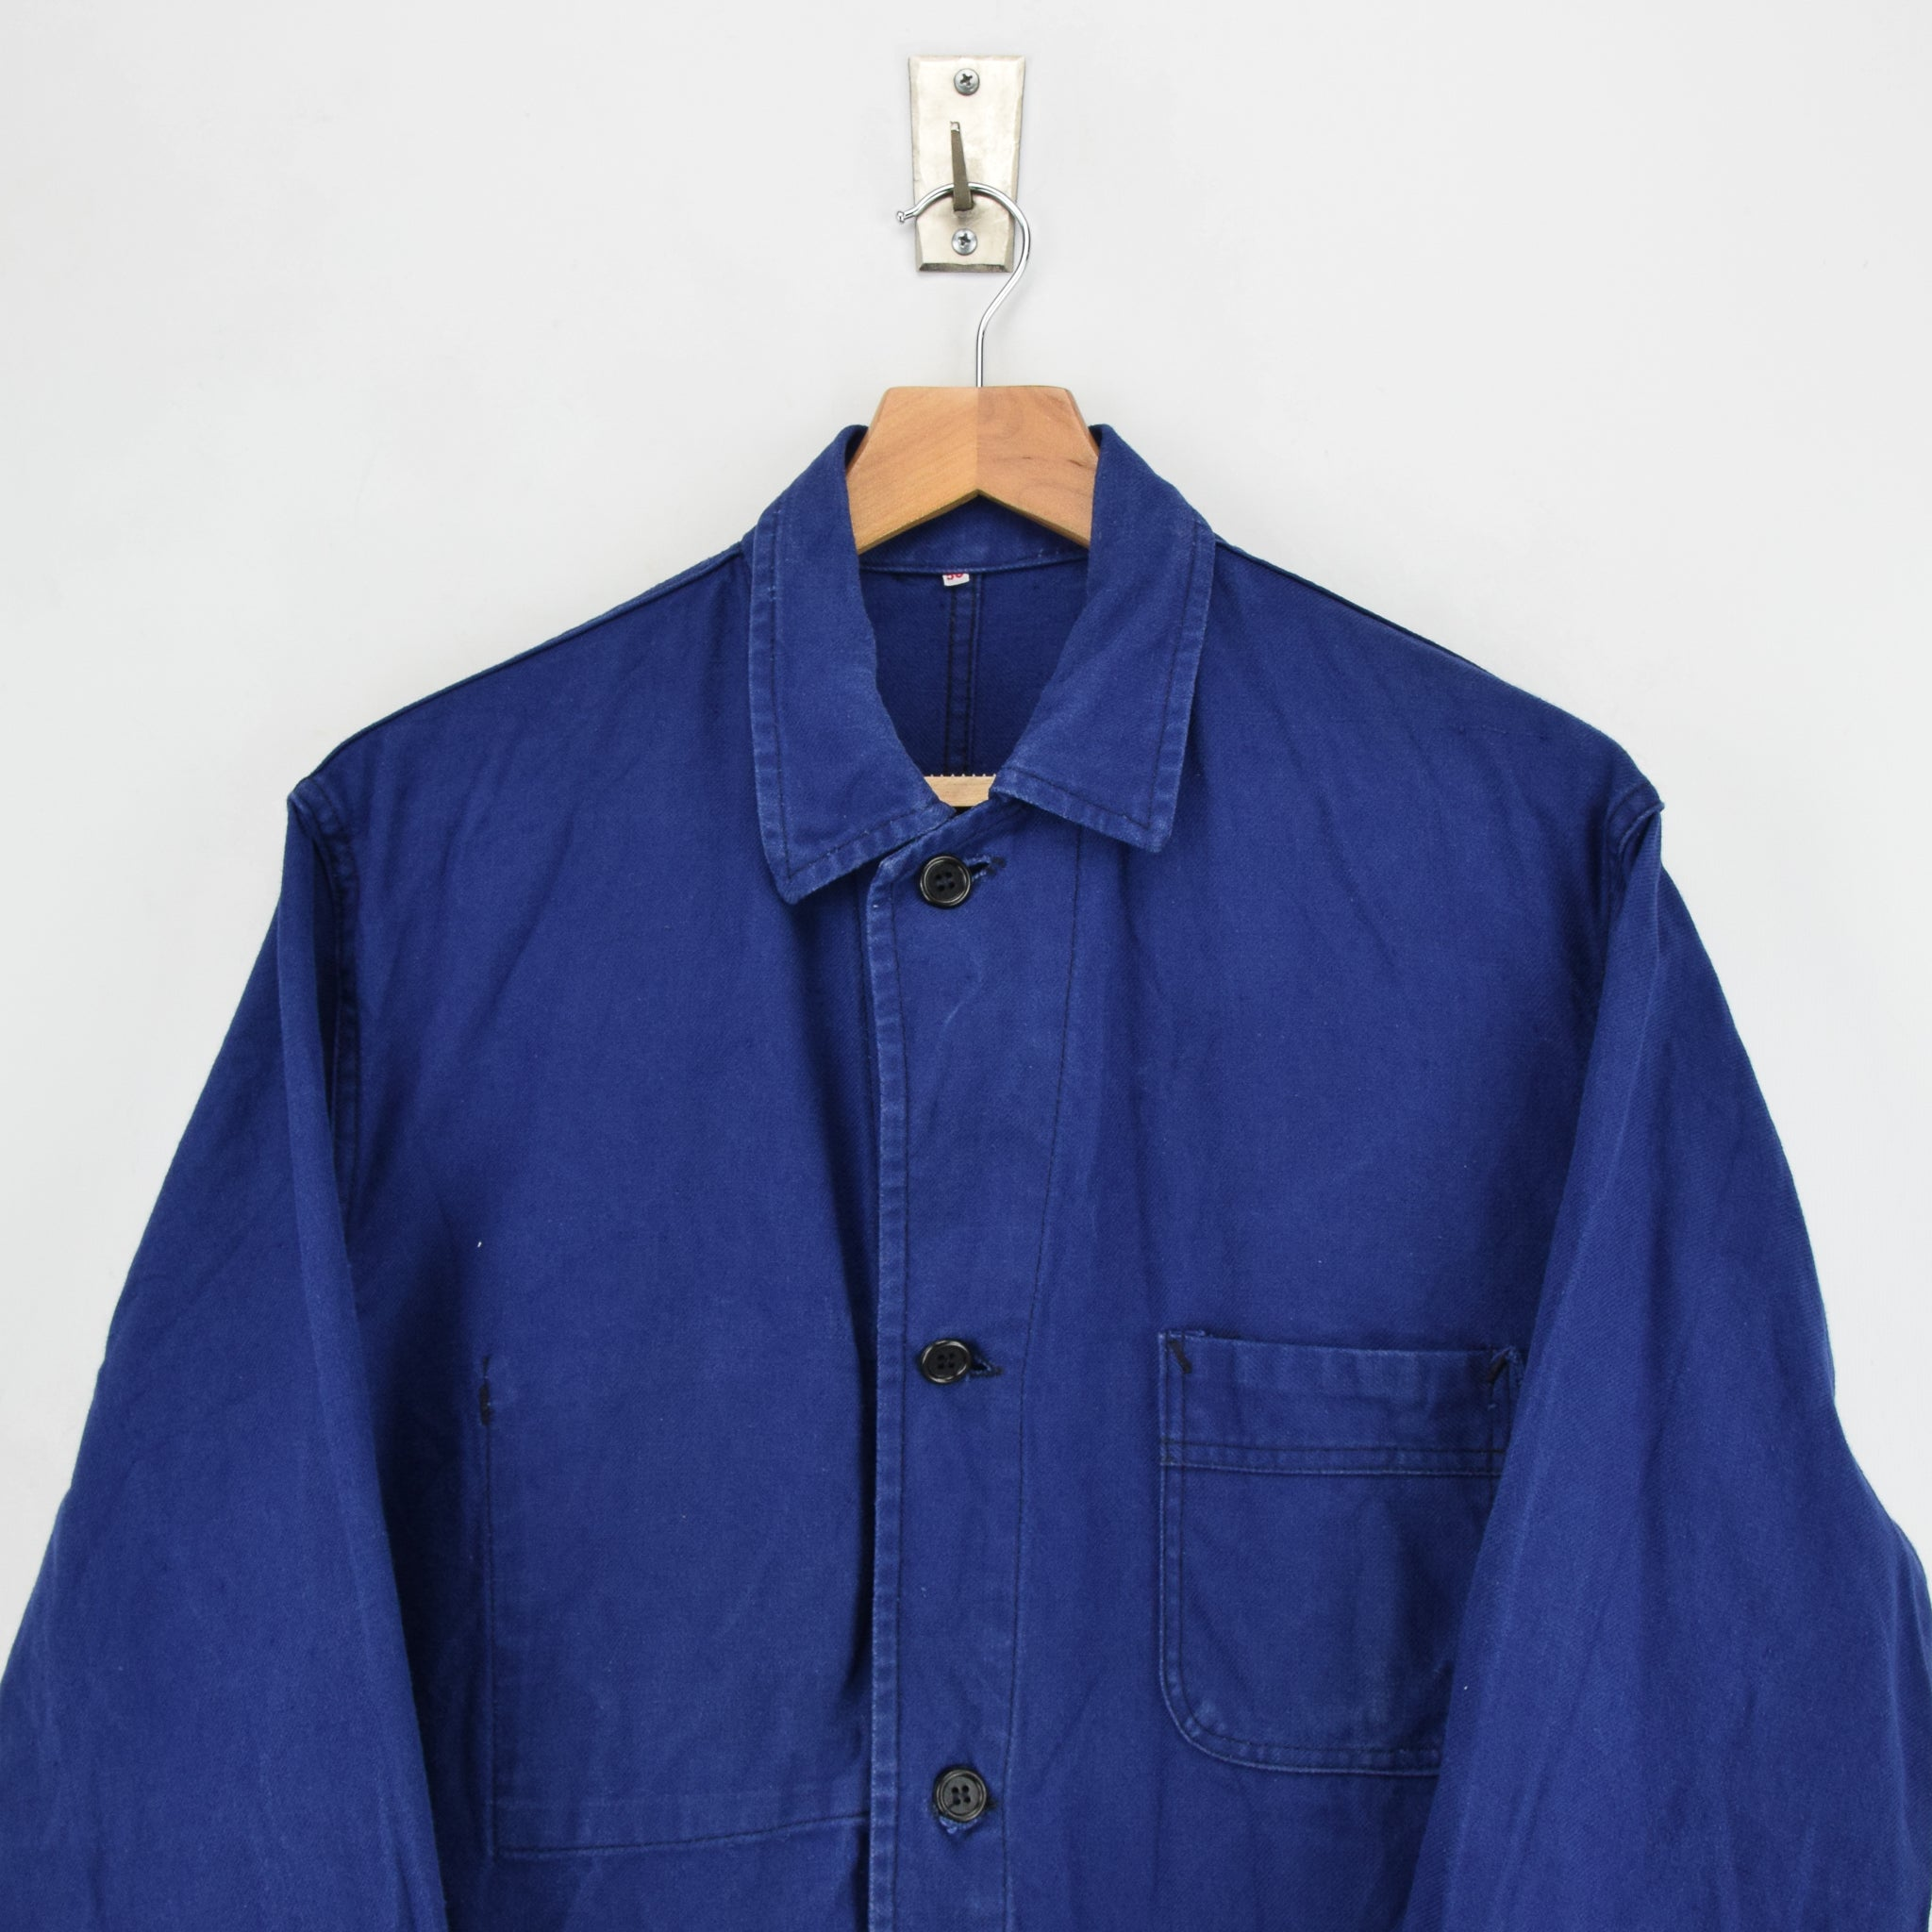 Vintage Indigo Blue French Worker Sanforized Cotton Chore Jacket M chest